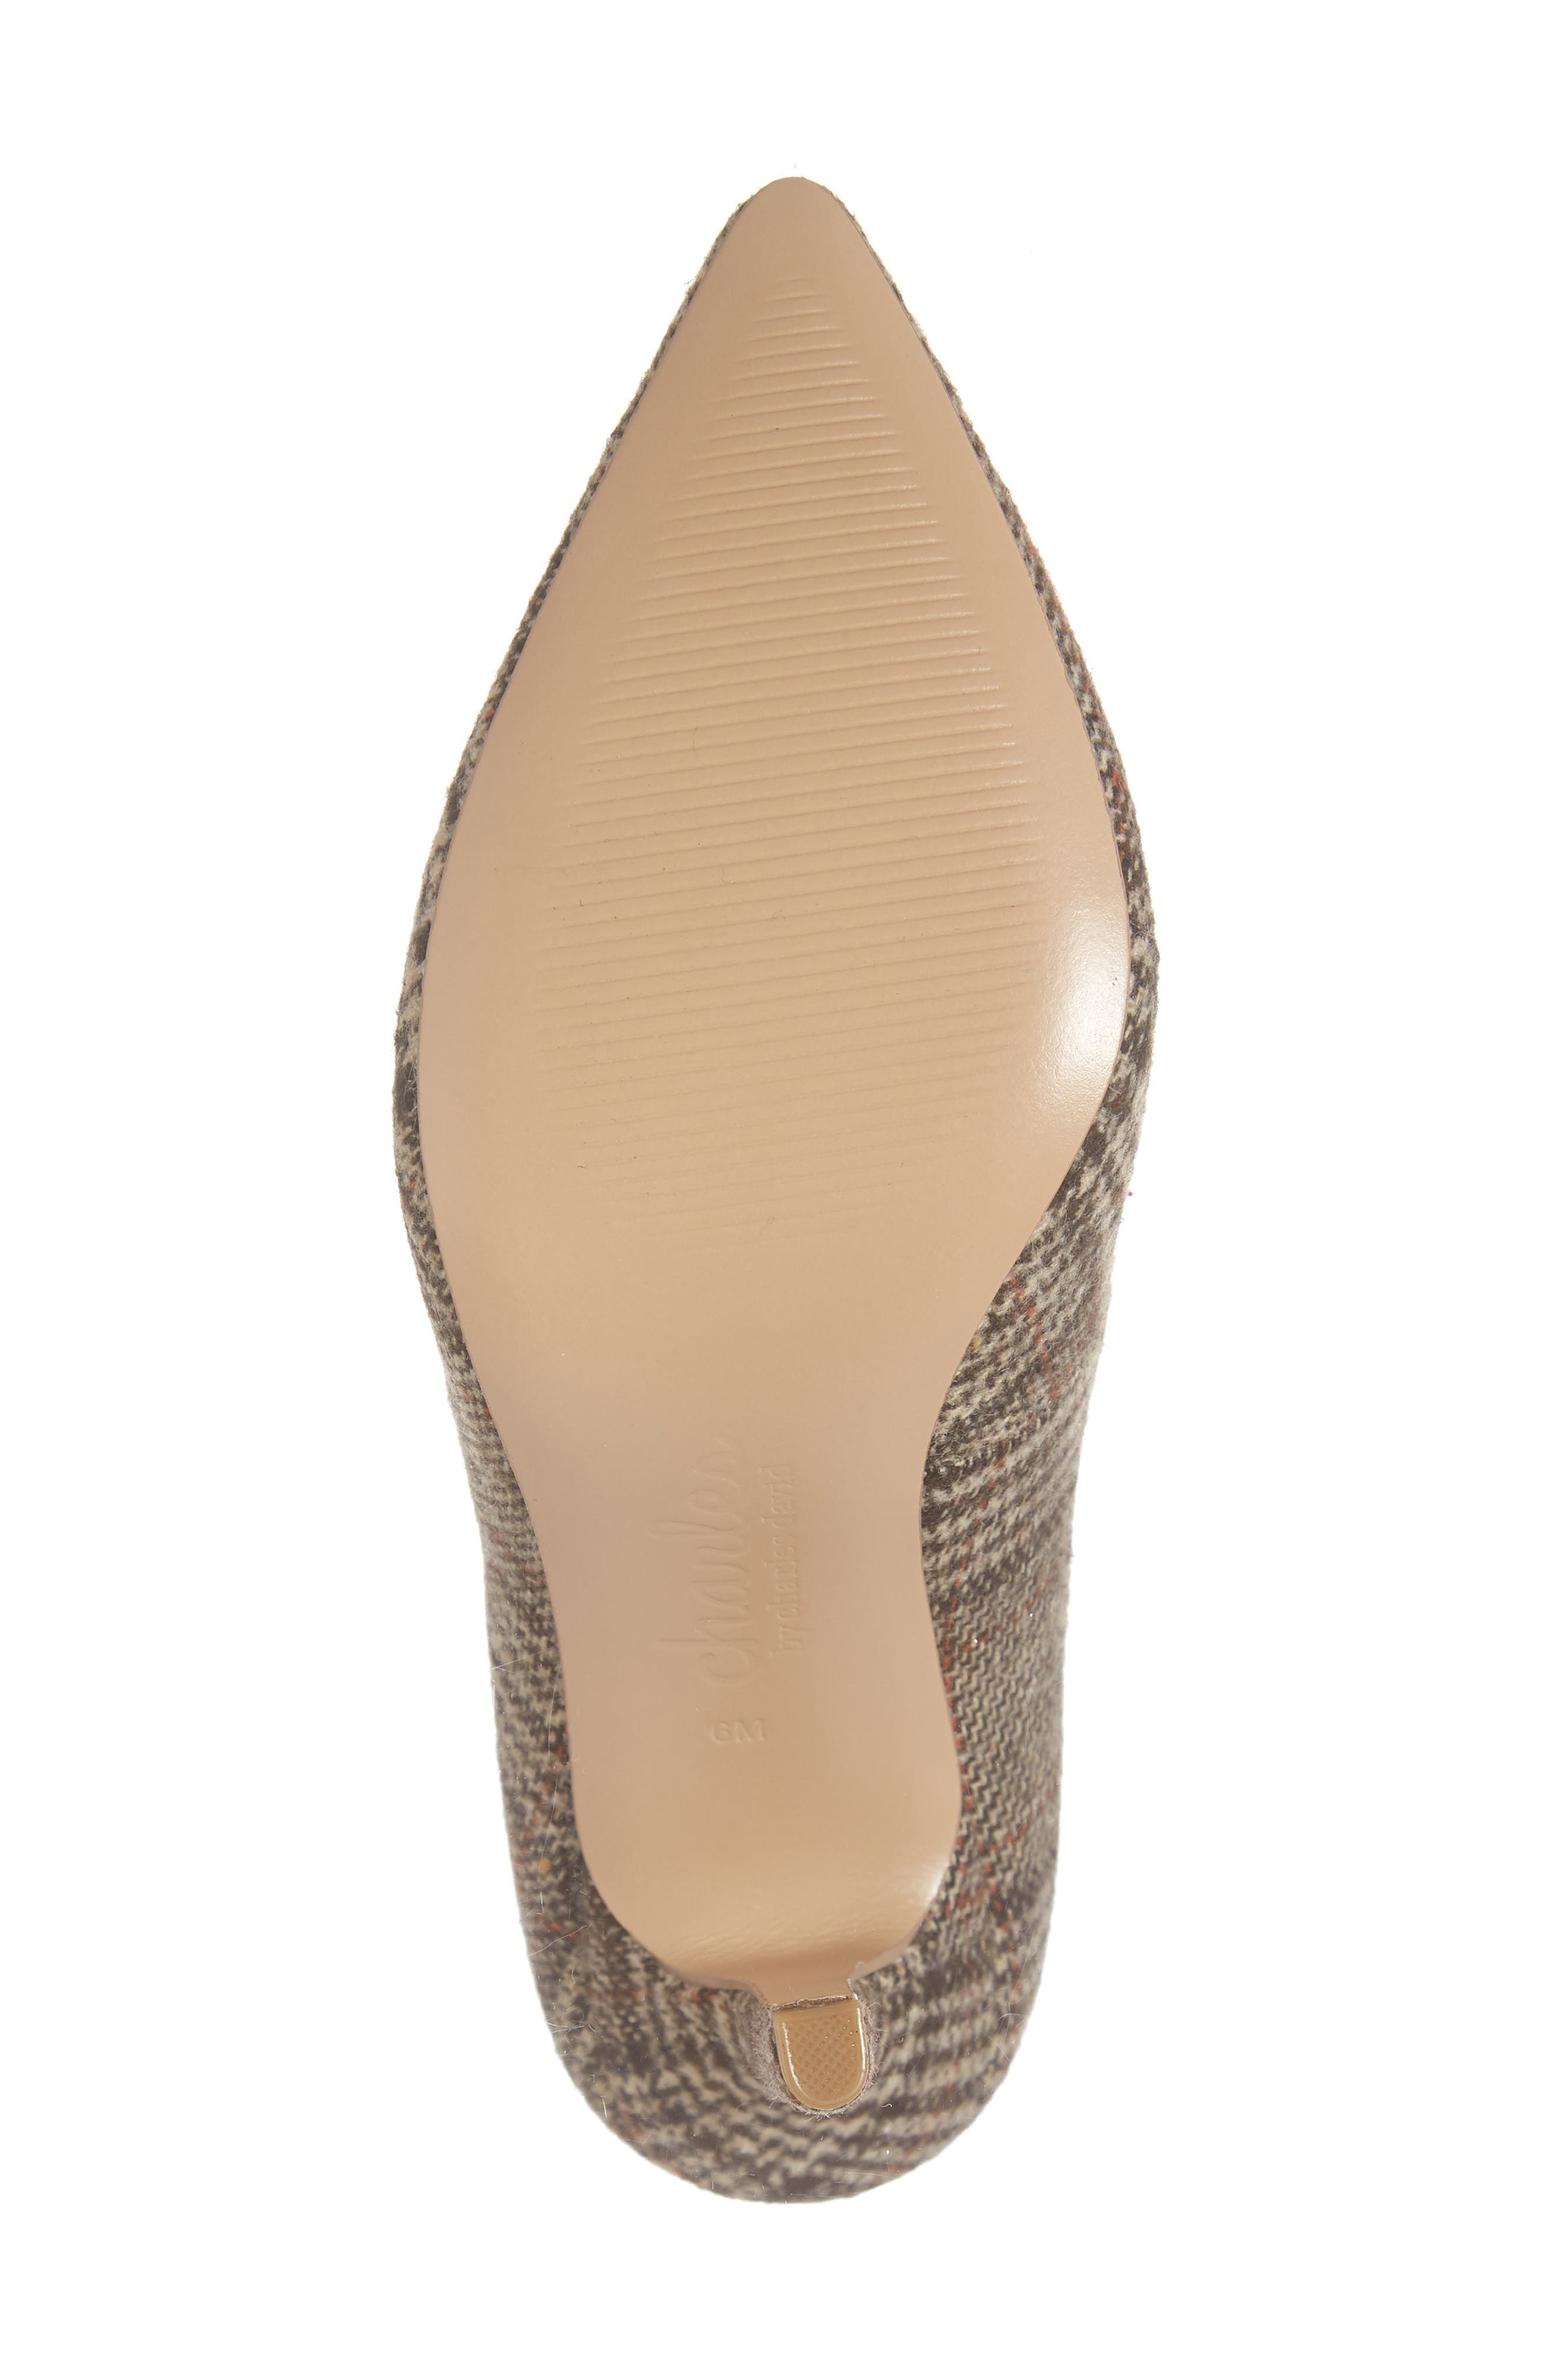 CHARLES BY CHARLES DAVID, Maxx Pointy Toe Pump, Alternate thumbnail 6, color, BROWN PLAID FABRIC